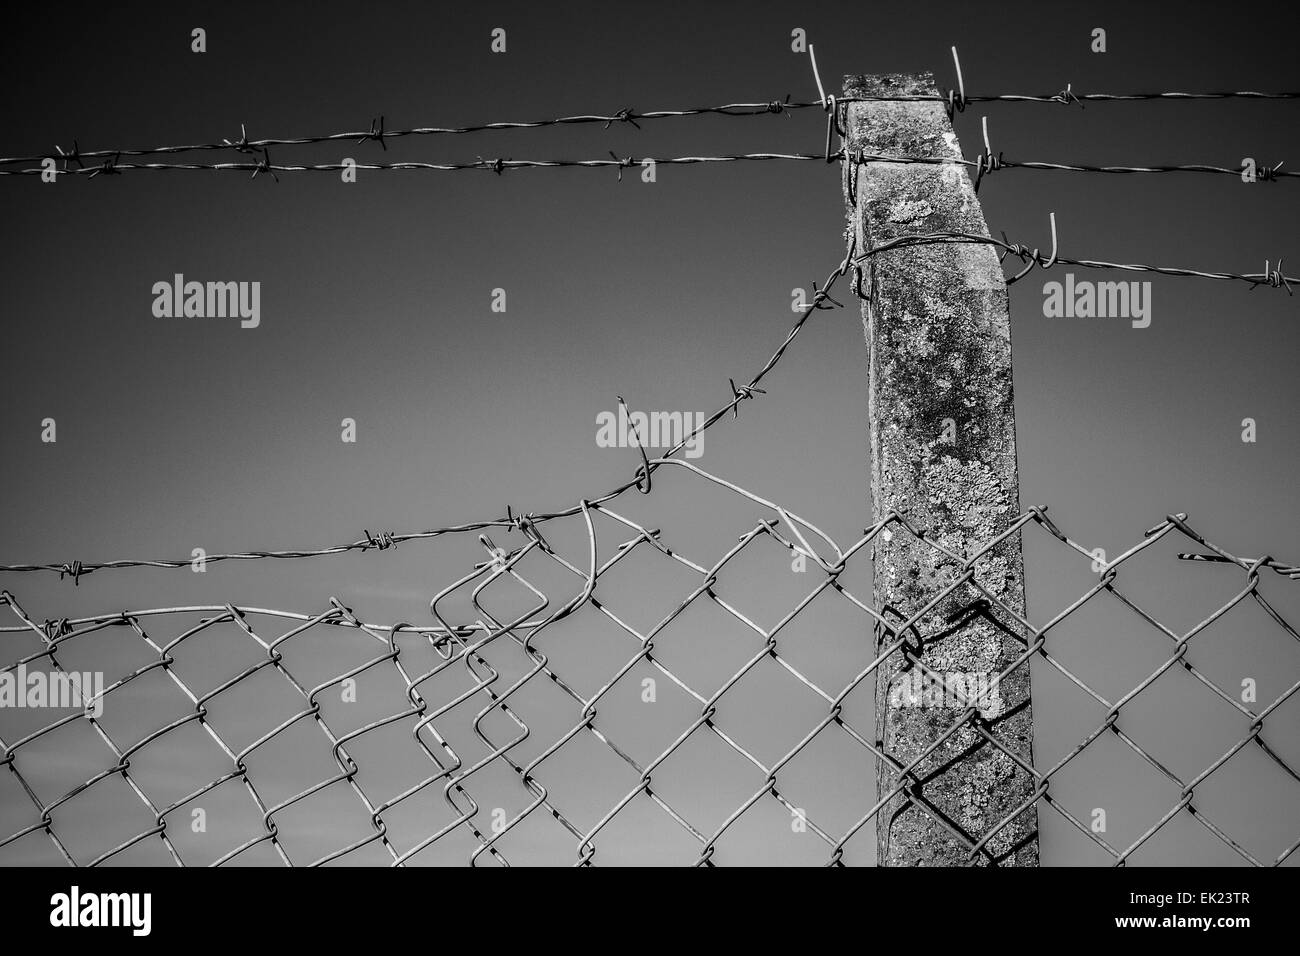 Wire netting fence in West Yorkshire. - Stock Image